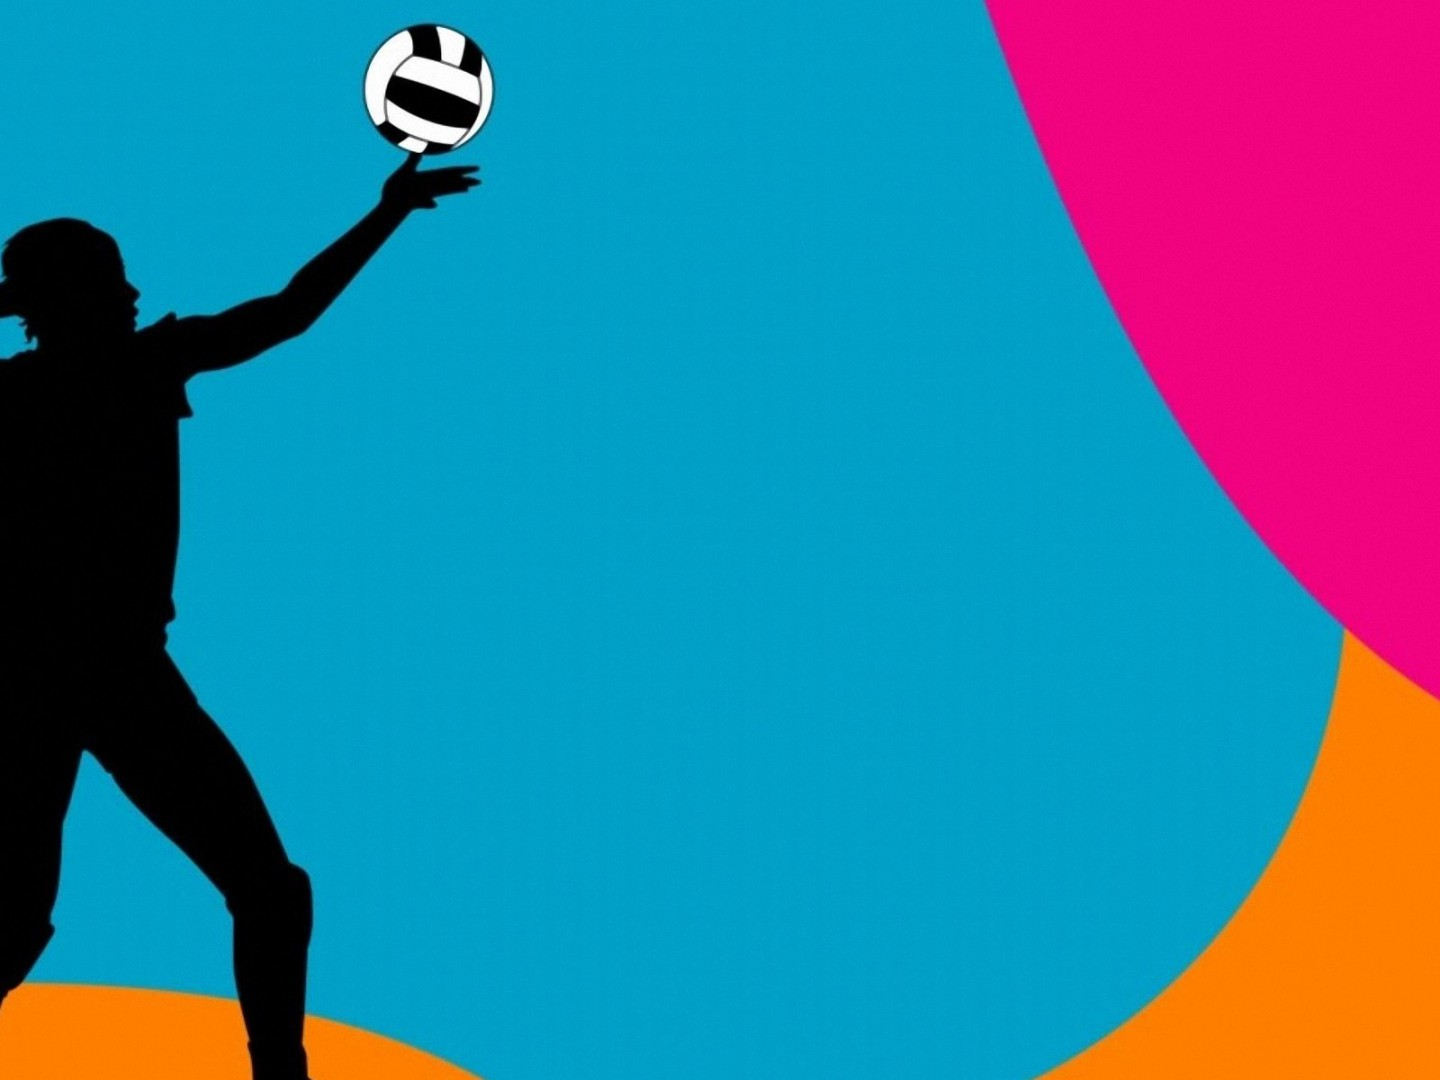 Colorful Volleyball Backgrounds Images 1440x1080